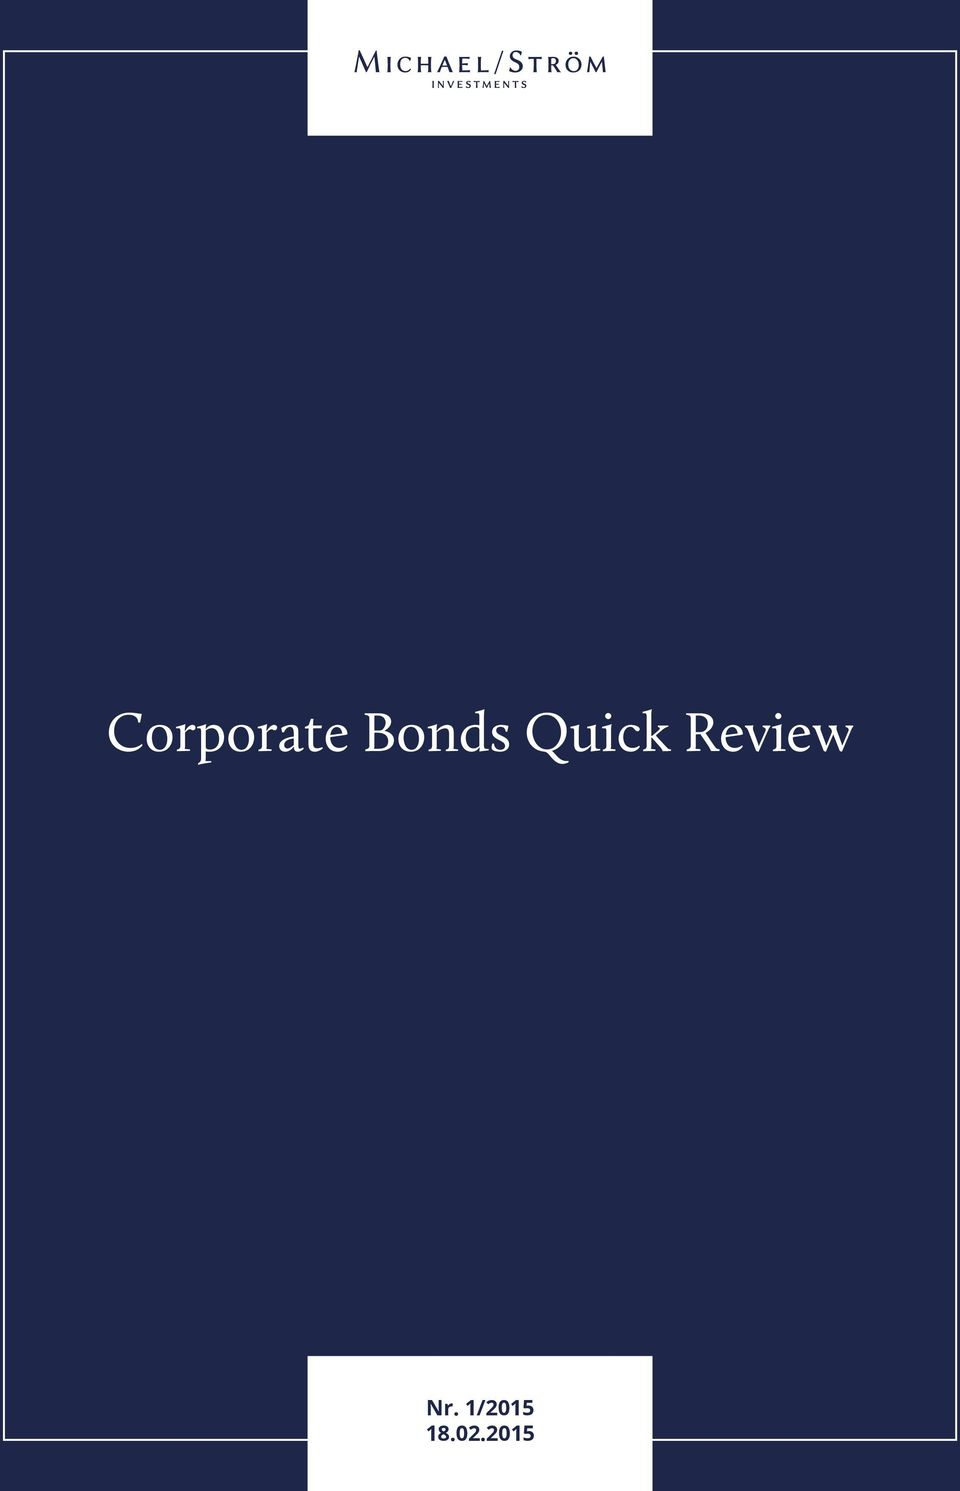 2015 Corporate Bonds